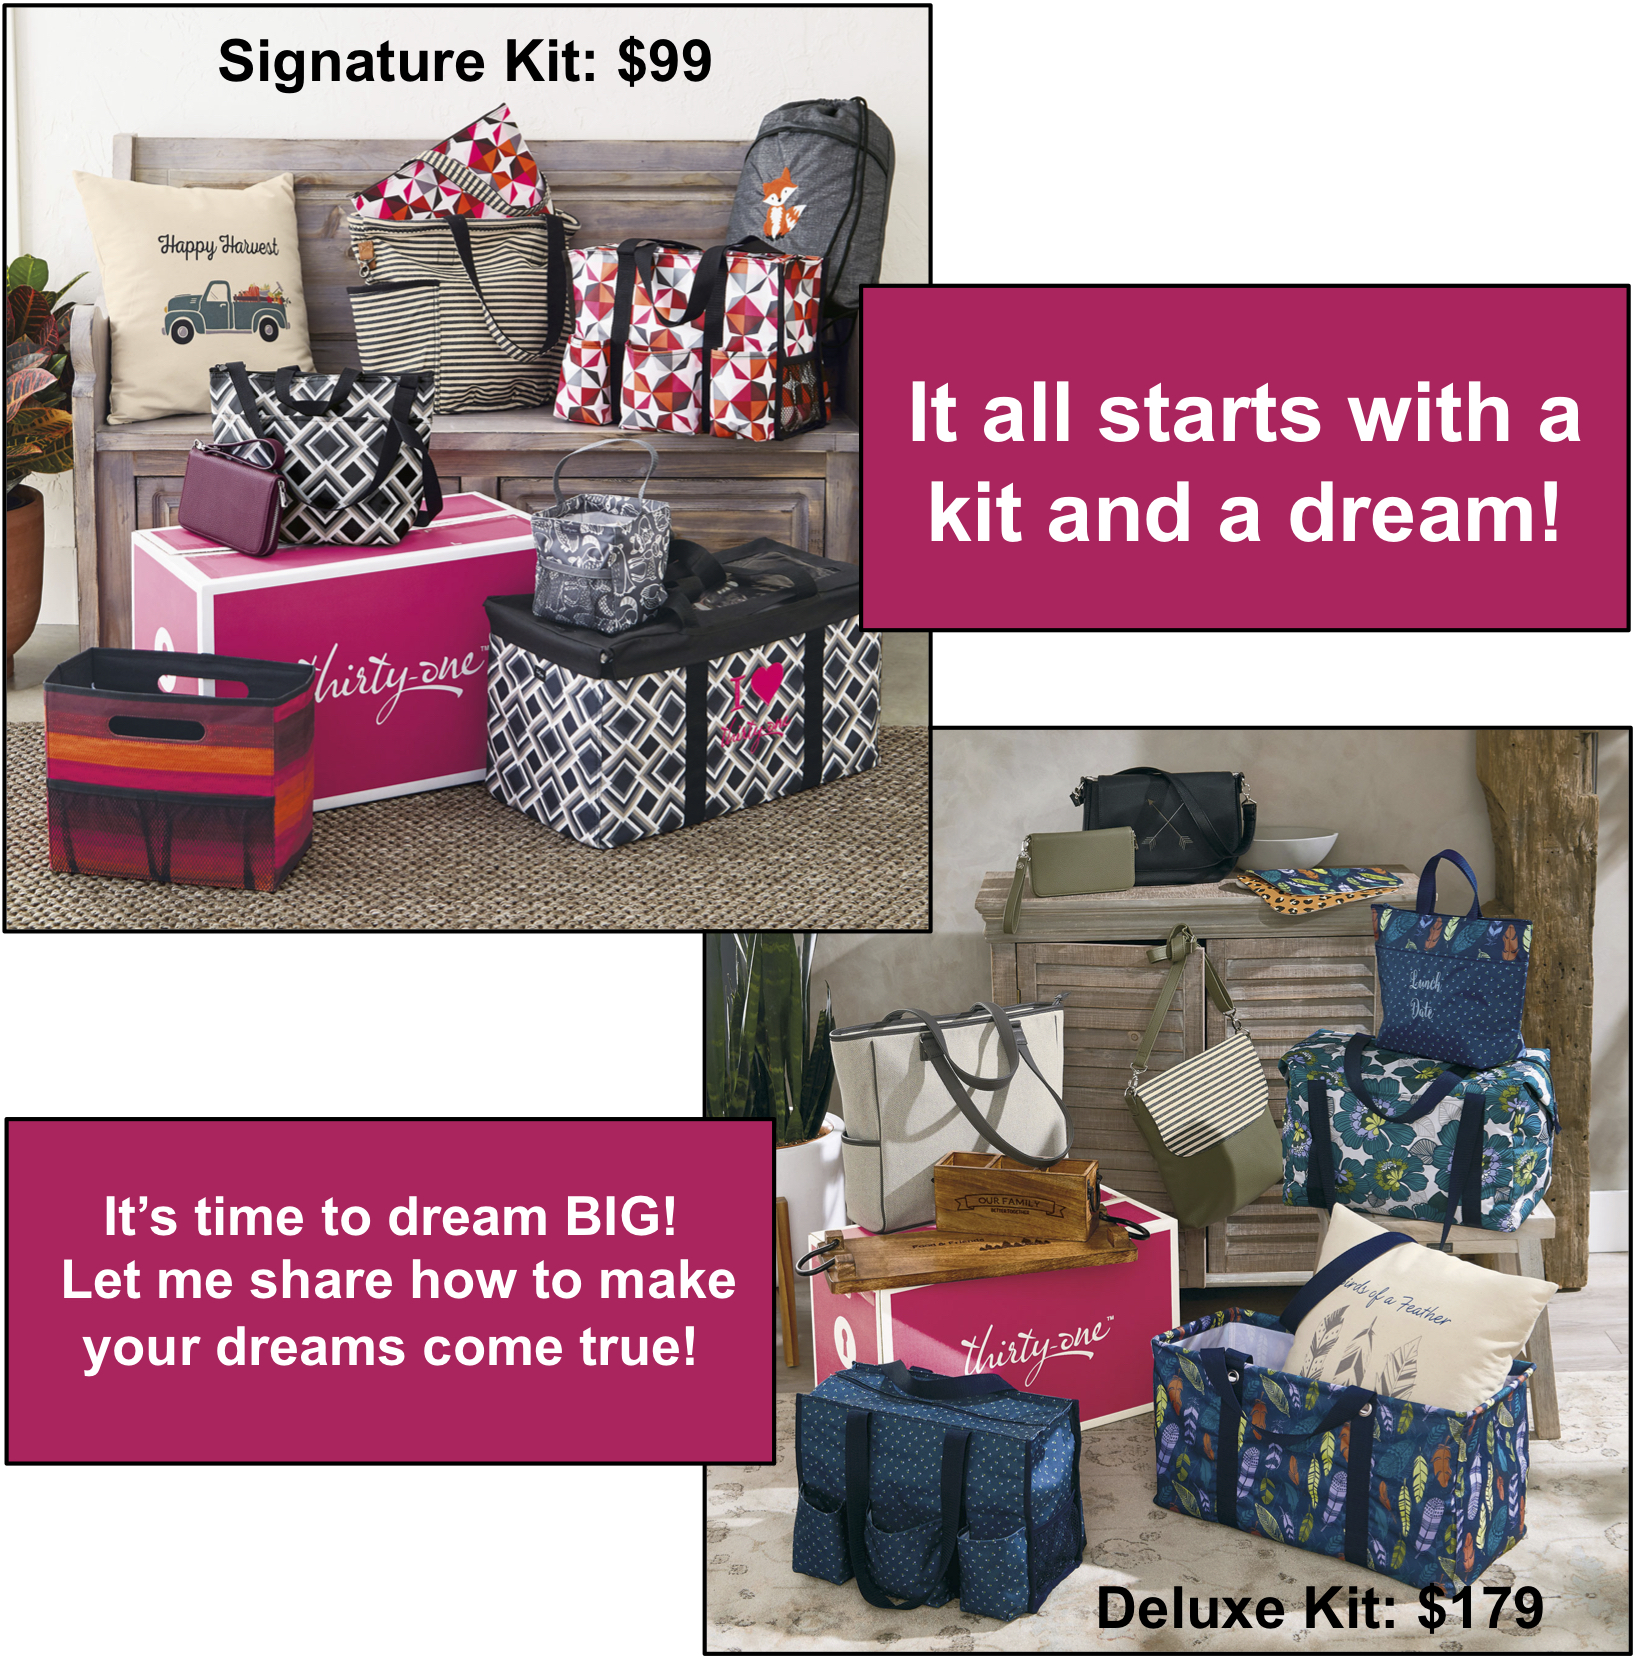 Thirty-One Gifts Opportunity